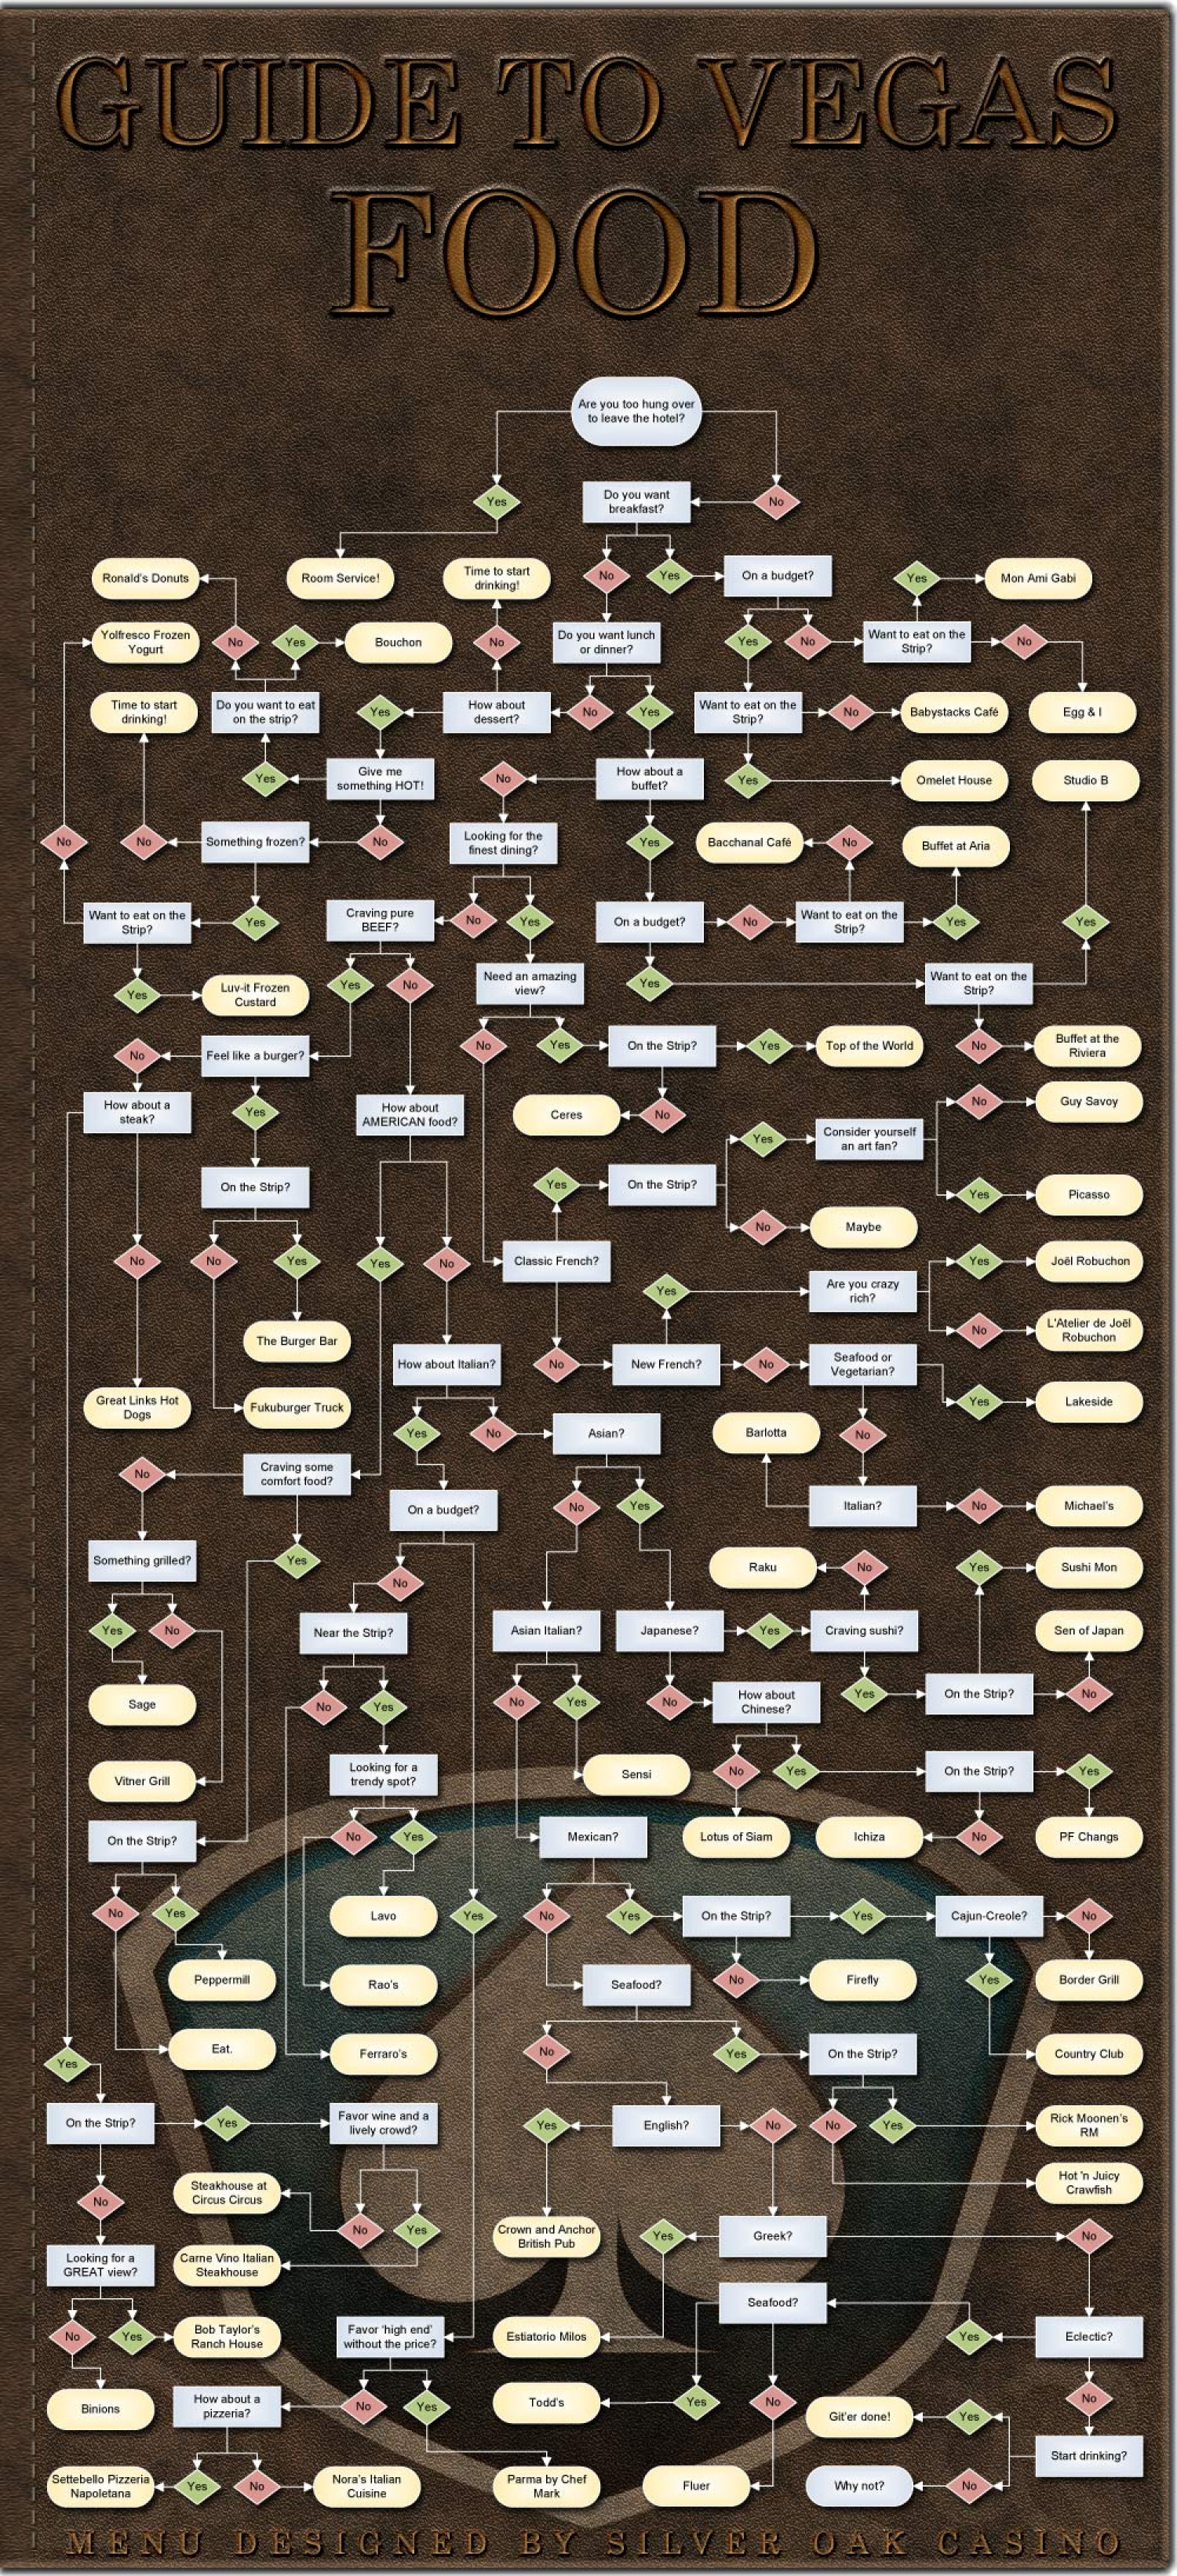 Guide to Vegas Food Infographic